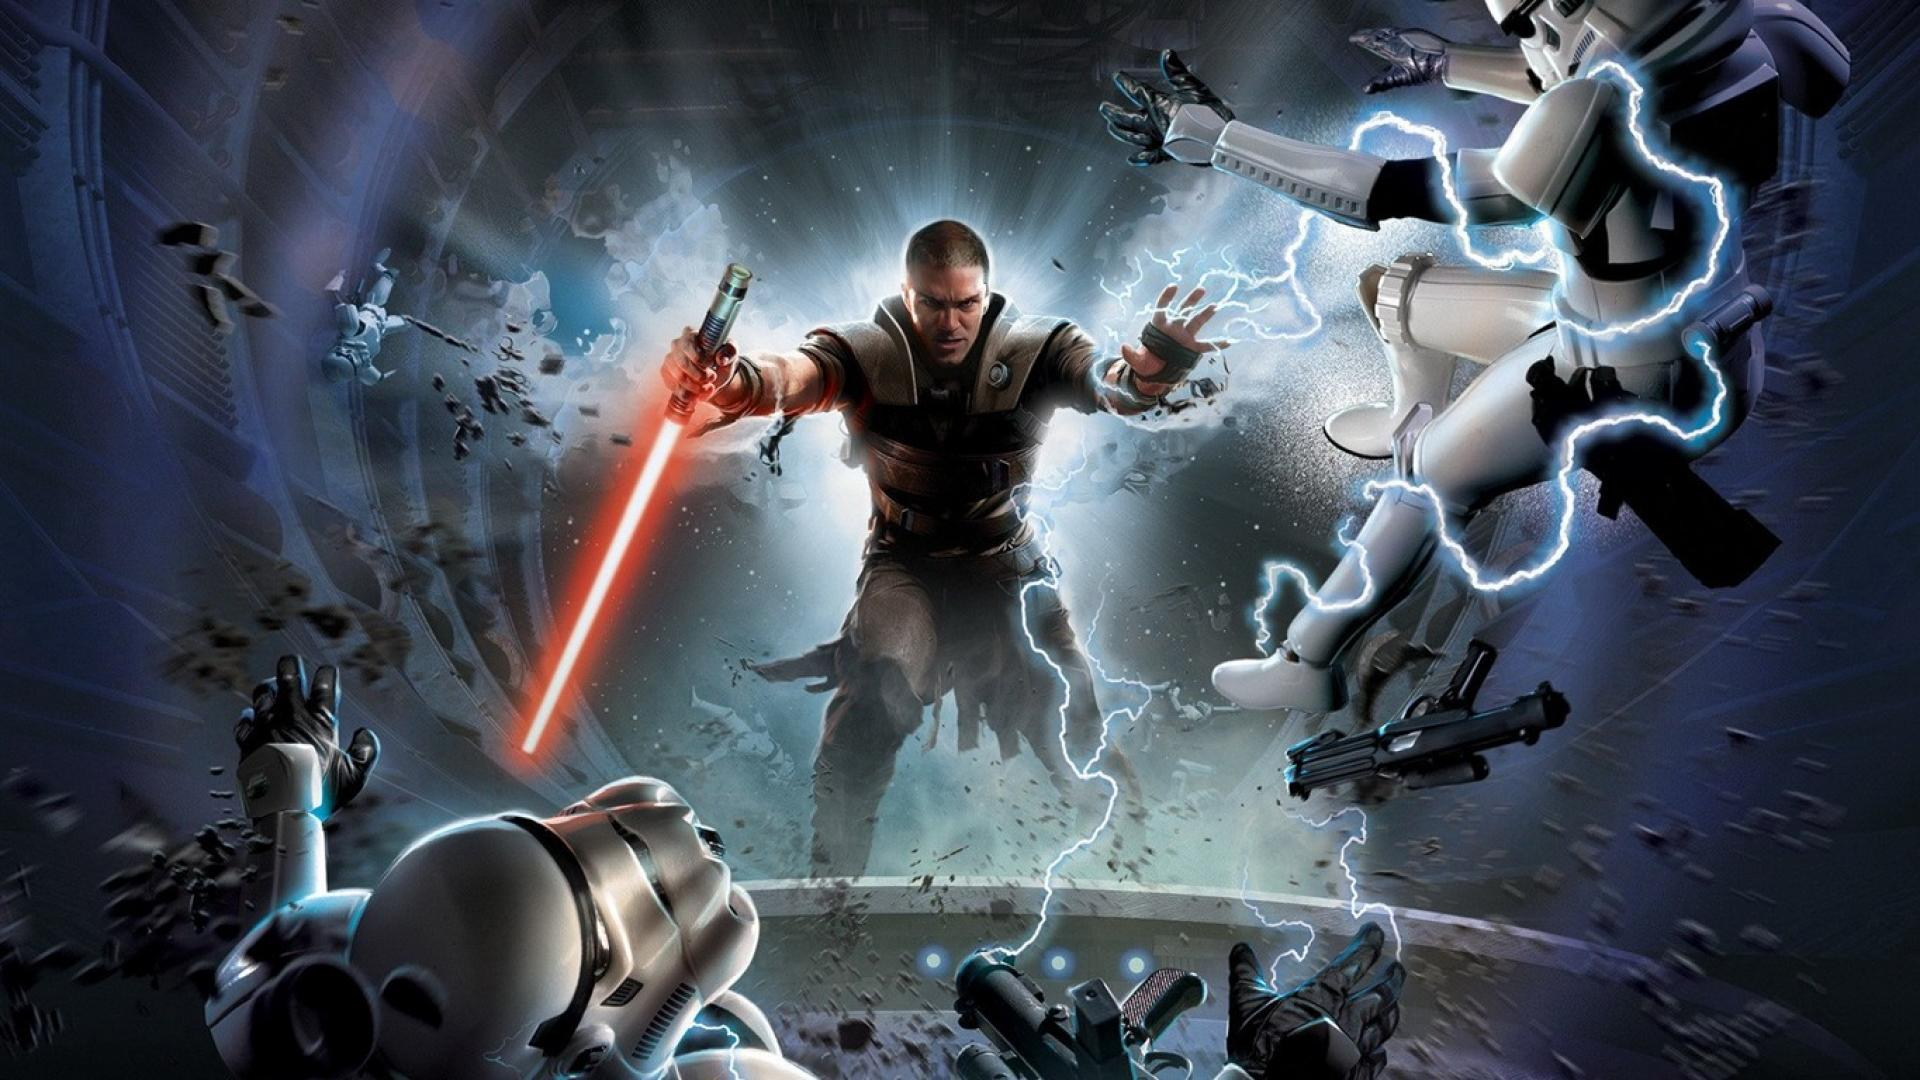 Hd Wallpapers For Pc Star Wars The Force Unleashed Banner